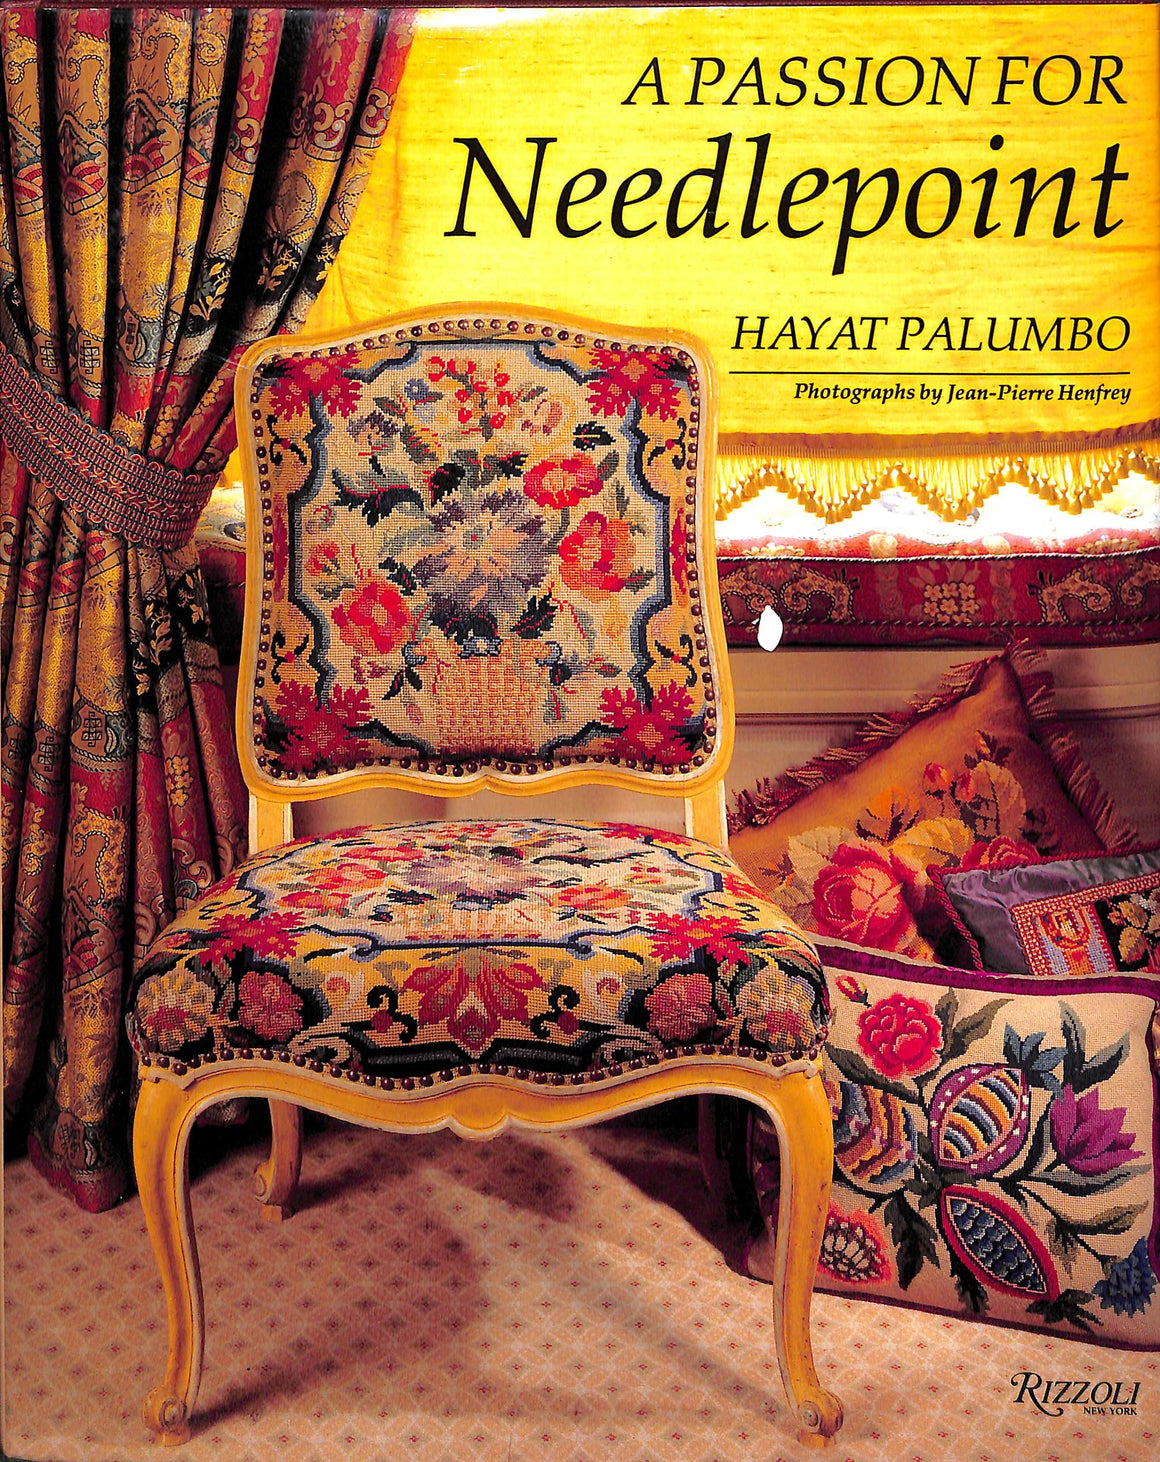 A Passion for Needlepoint by Hyat Palumbo